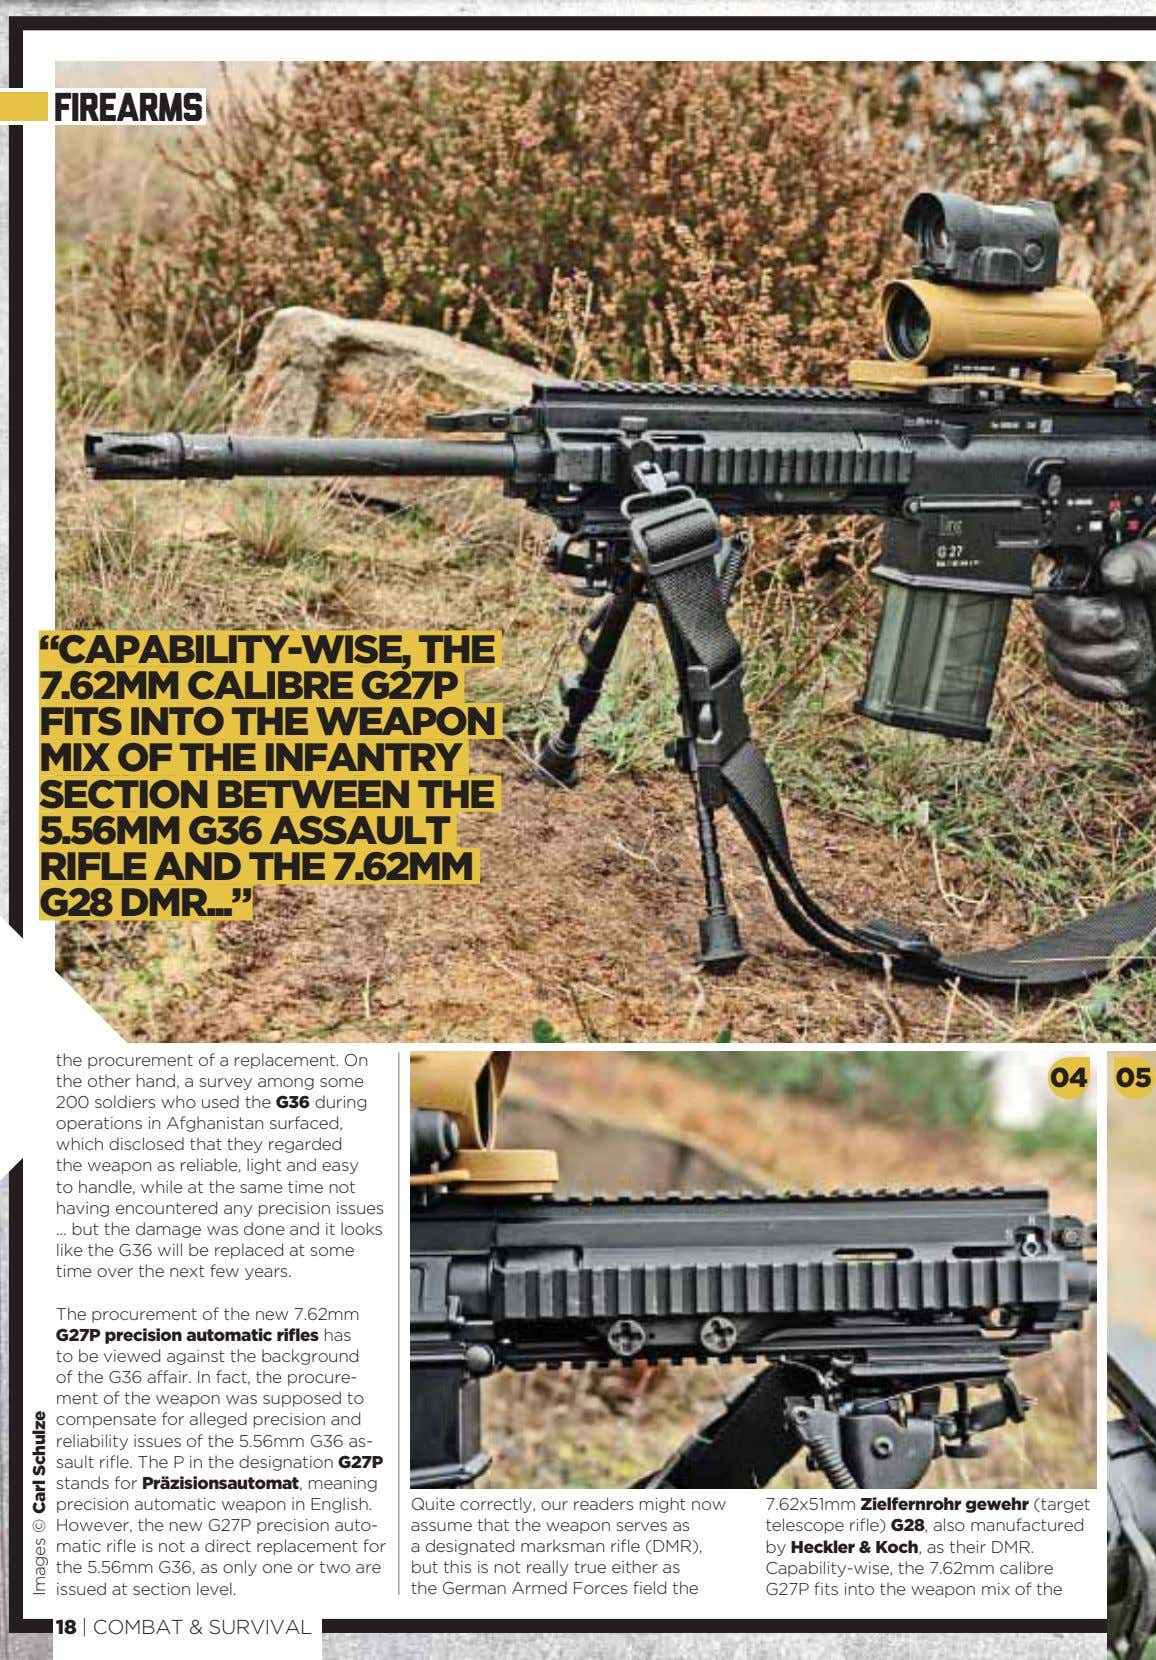 "firearms ""CAPABILITY-WISE, THE 7.62MM CALIBRE G27P FITS INTO THE WEAPON MIX OF THE INFANTRY SECTION"